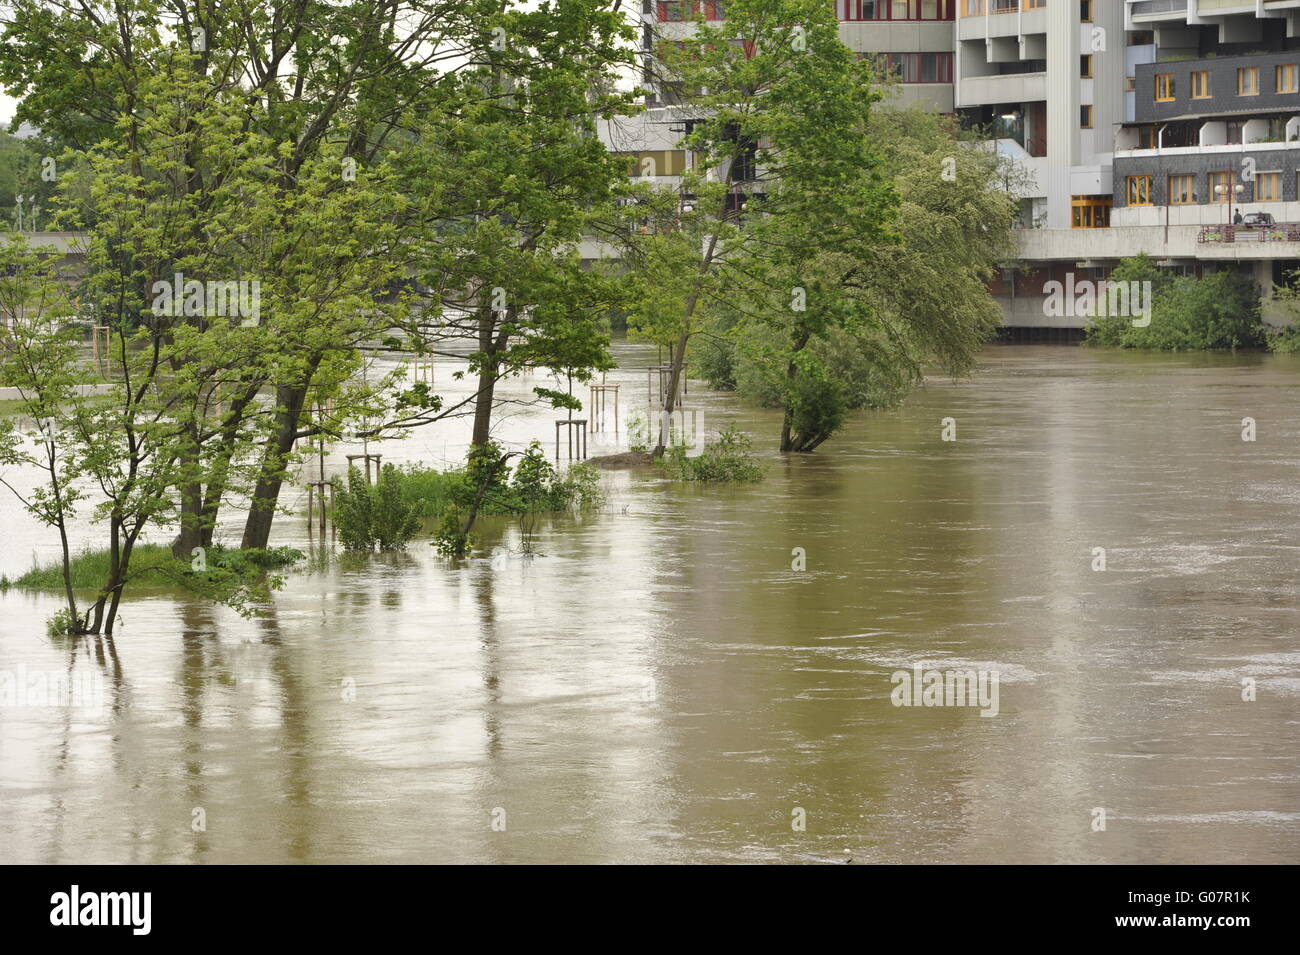 Natural disaster Floods in Hanover - Stock Image